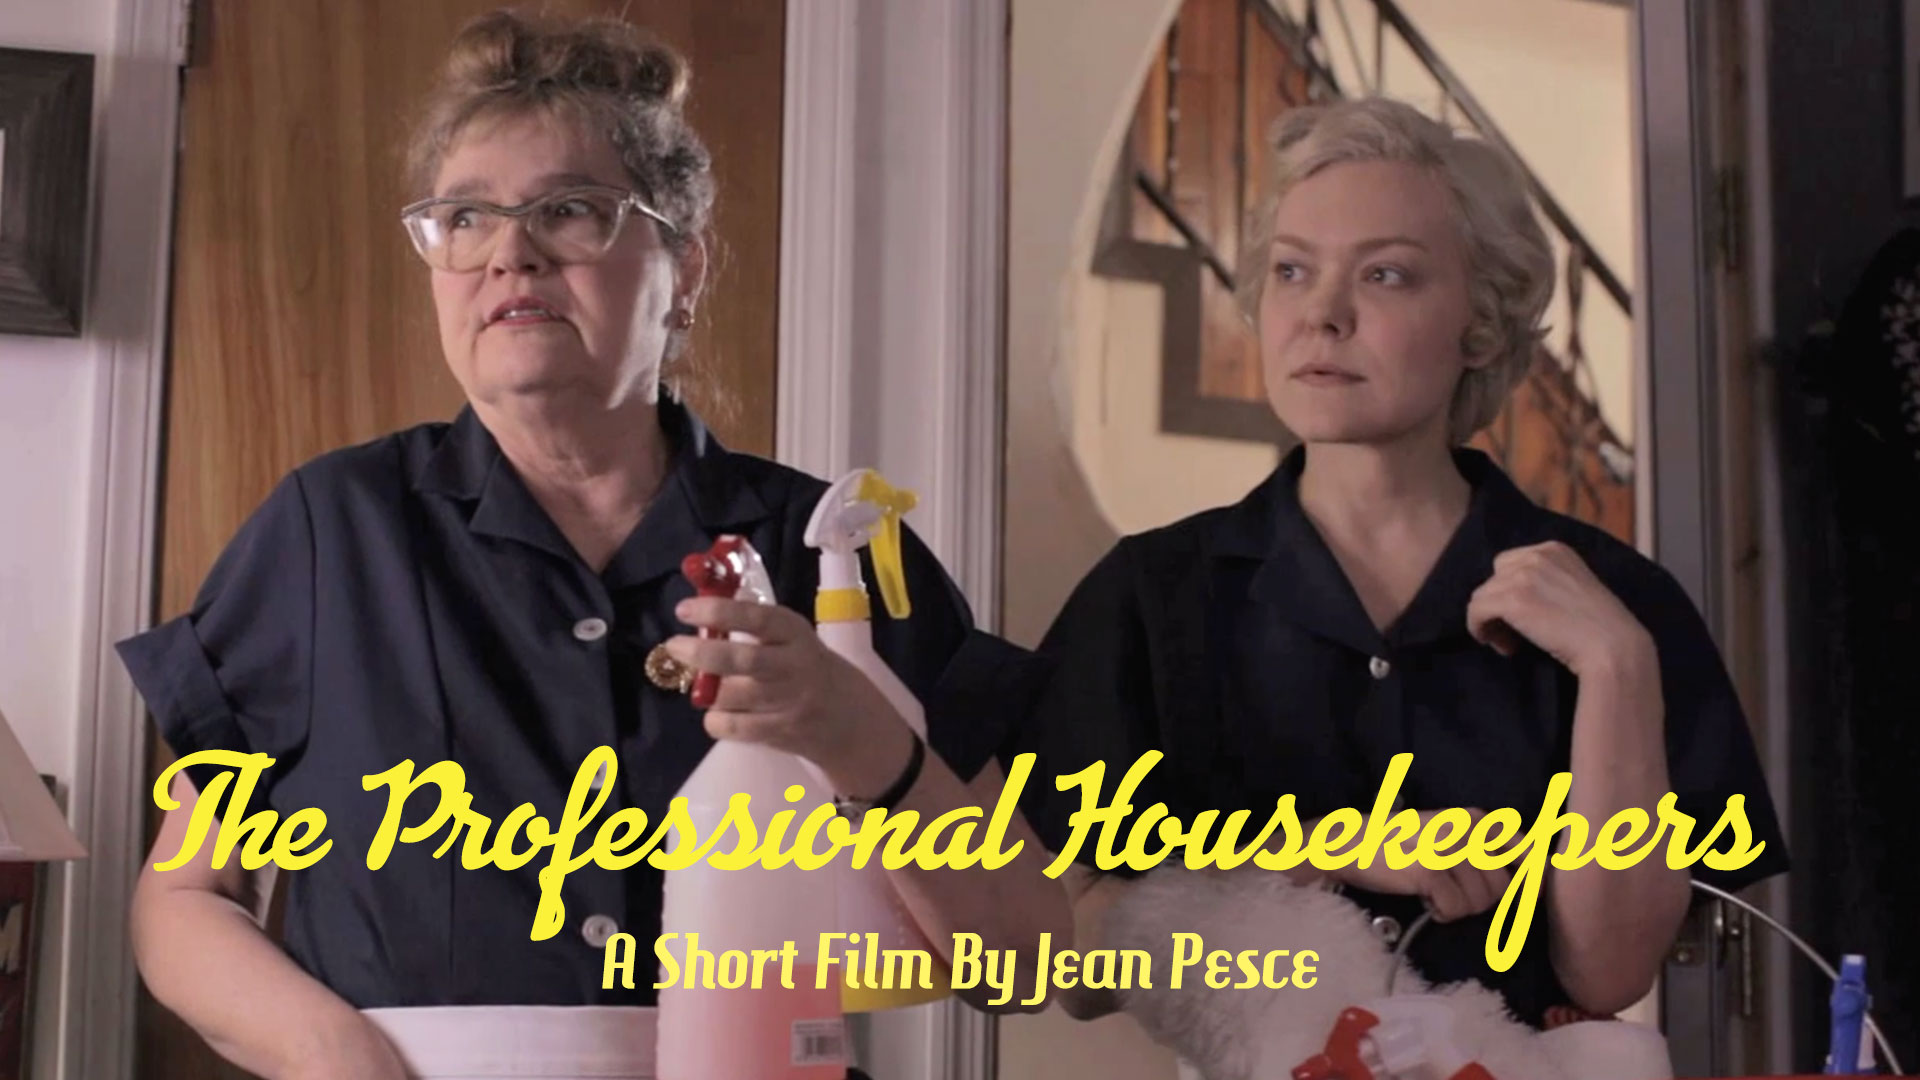 The Professional Housekeepers